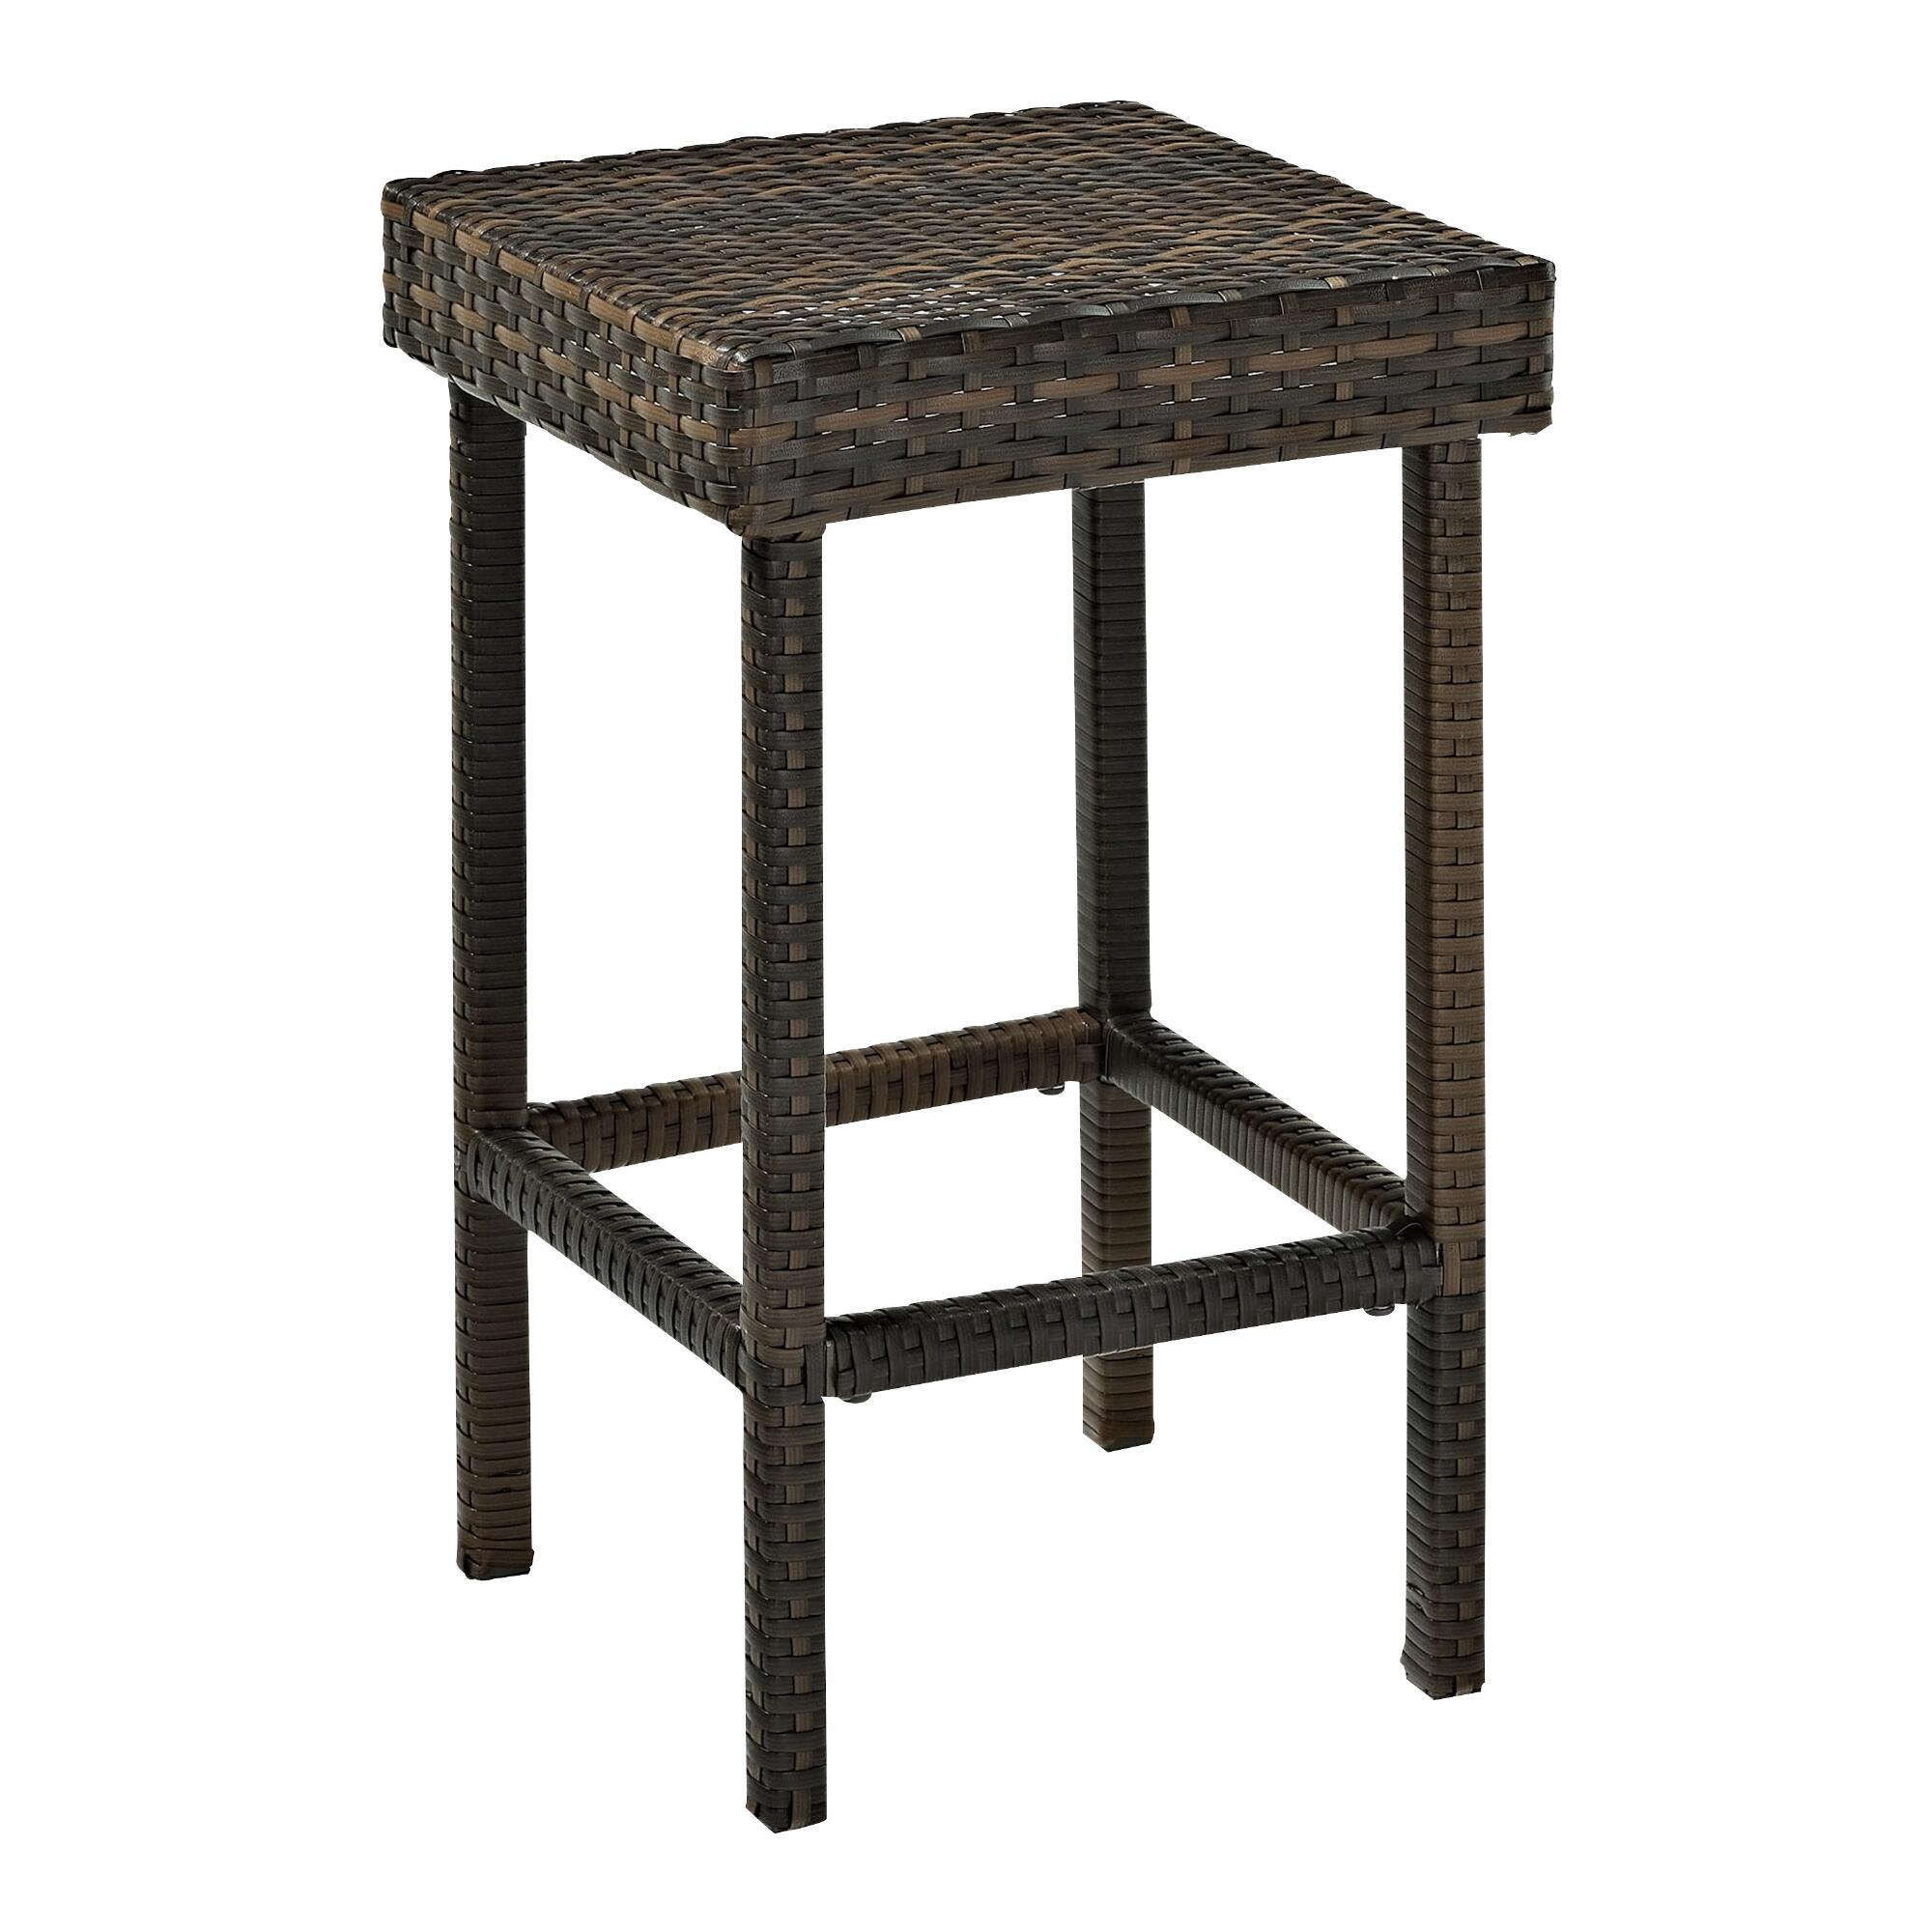 All Weather Wicker Pinamar Outdoor Patio Counter Stools Set of 2: Brown - Resin by World Market